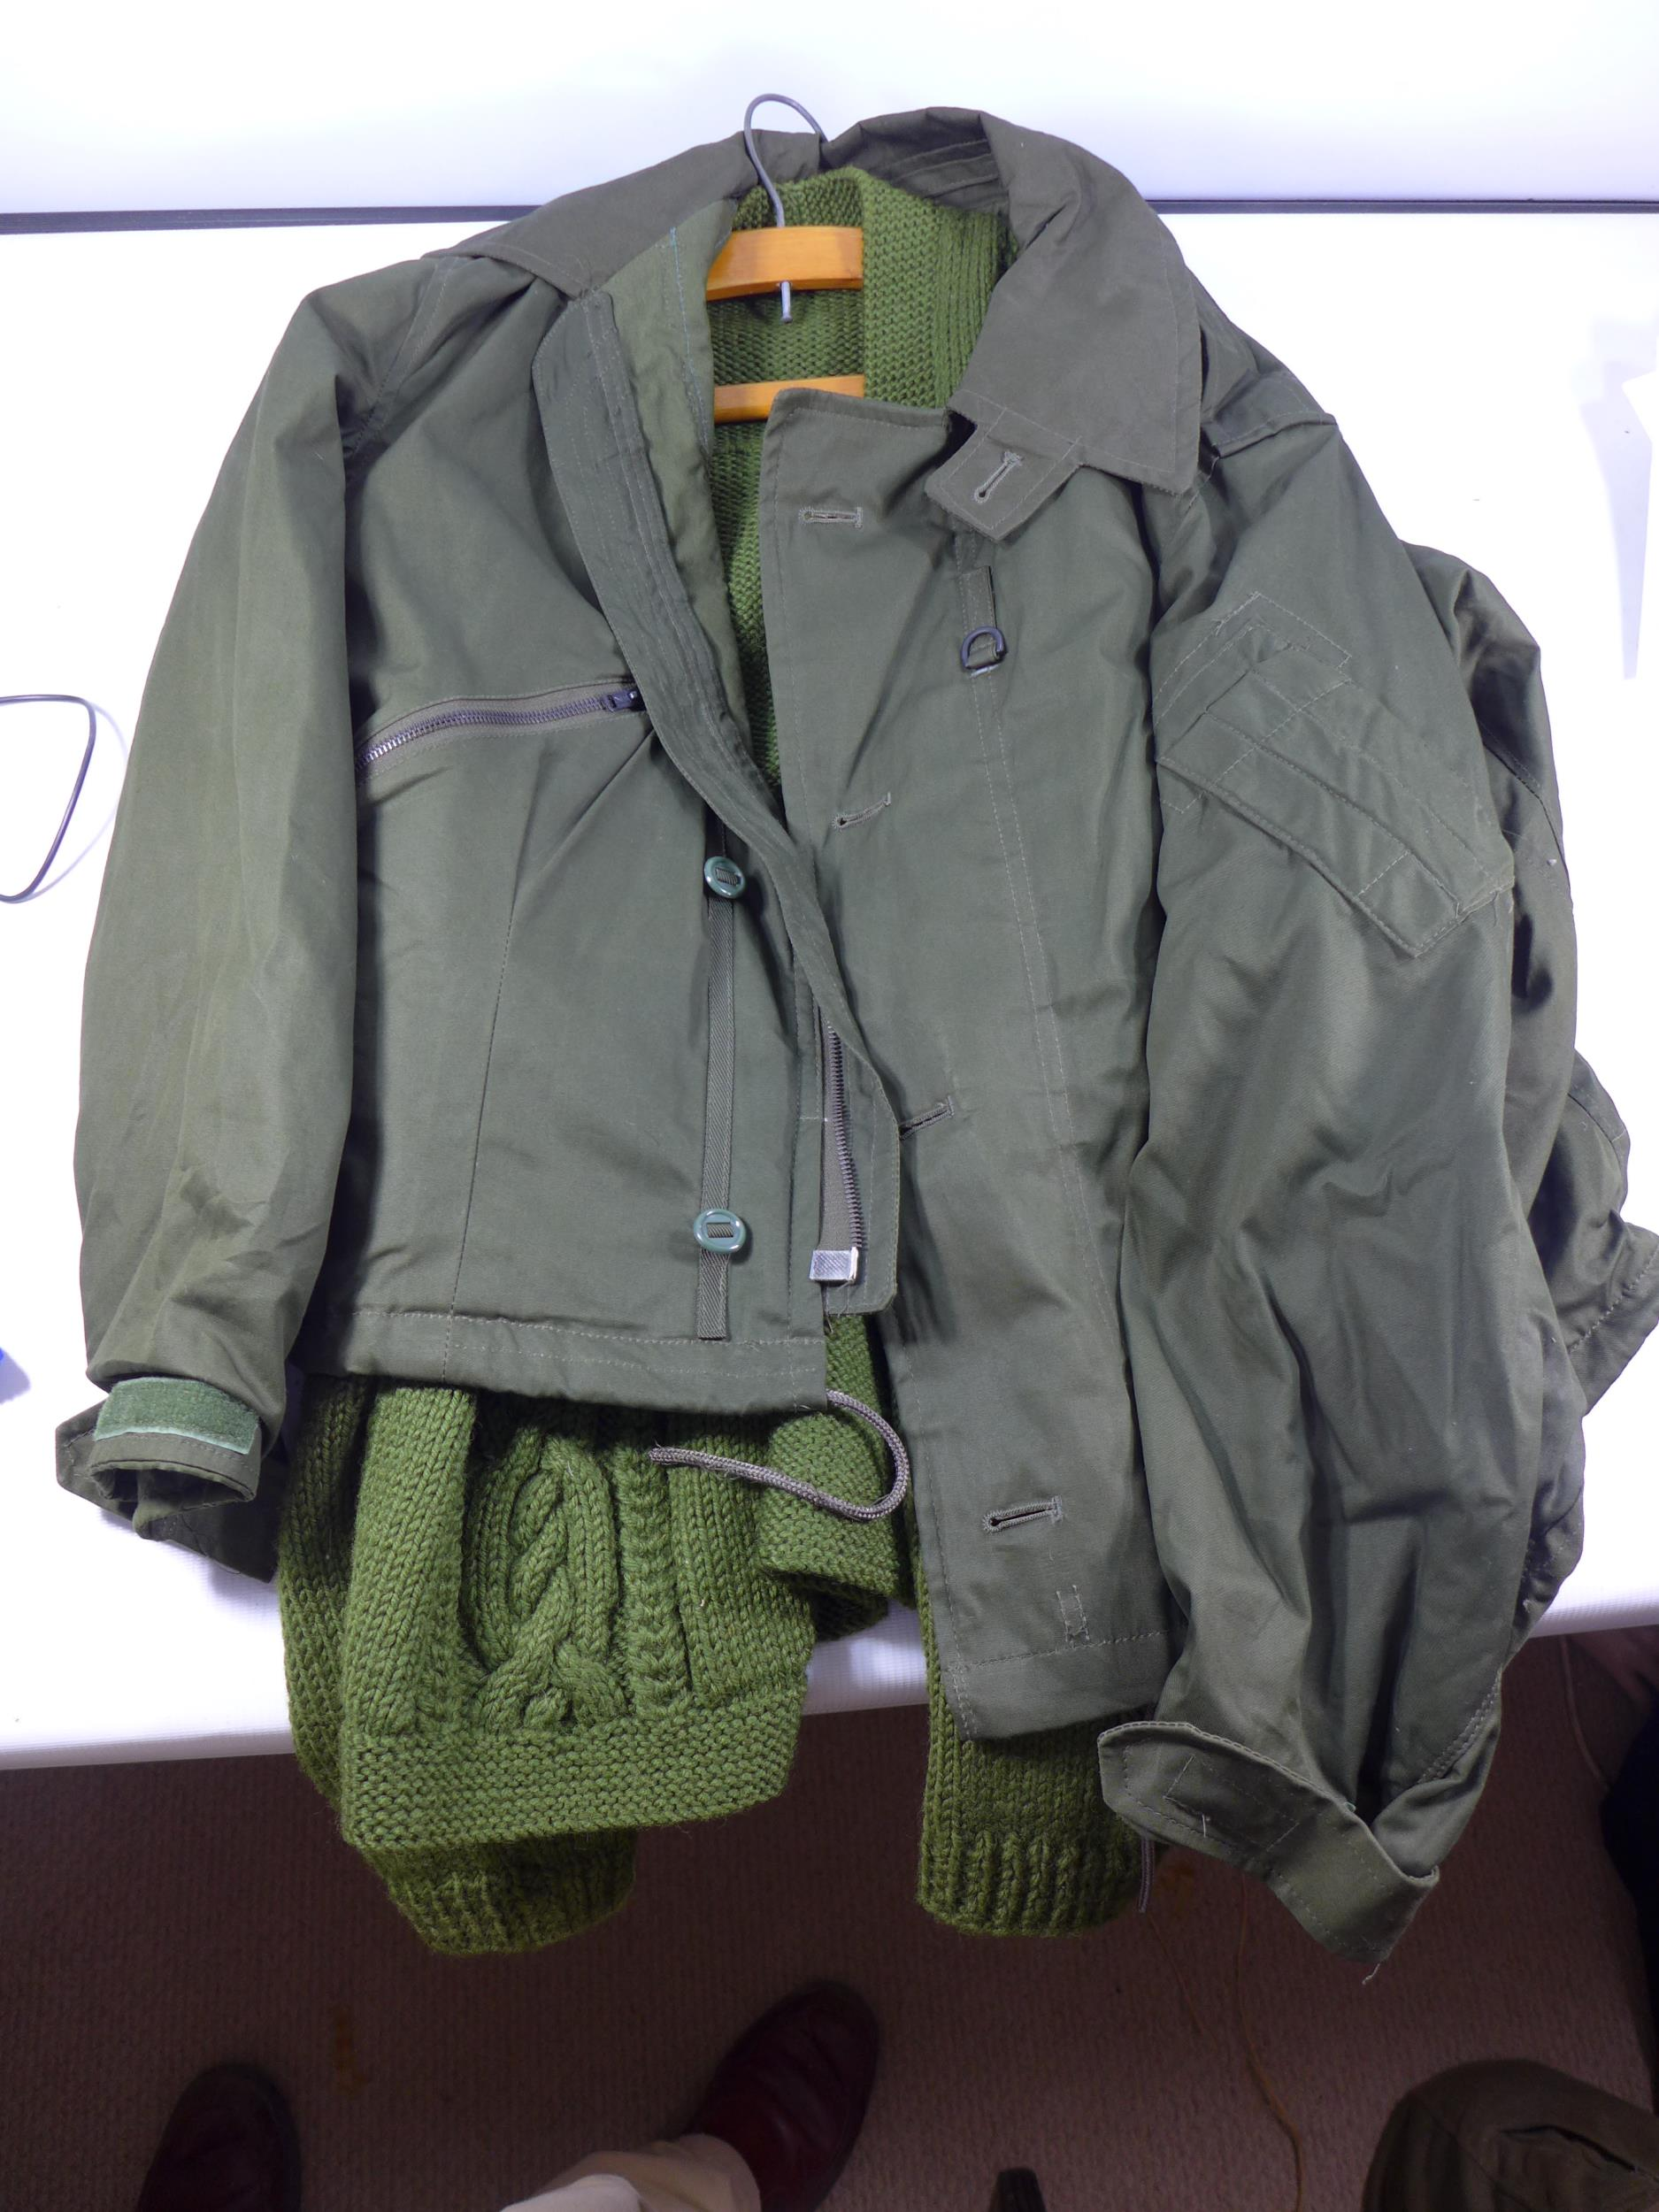 A CAMOUFLAGE SMOCK COMBAT UNIFORM, SIZE S COMPRISING OF A COAT AND TROUSERS, HAT ETC ALSO A - Image 3 of 4